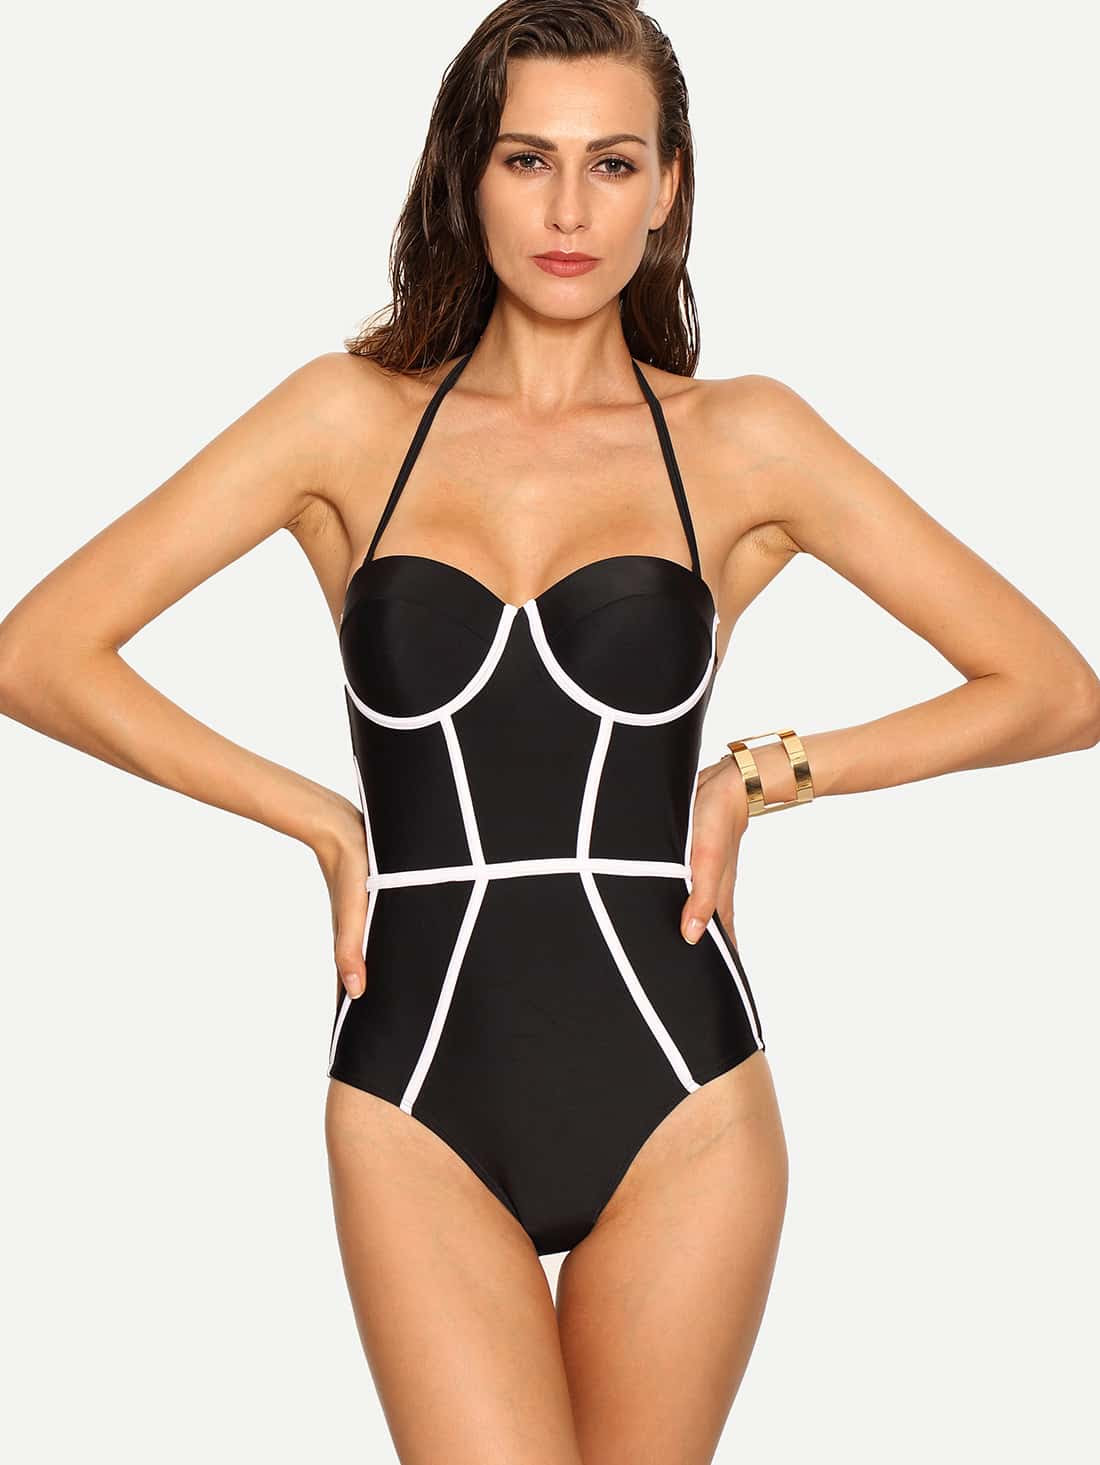 http://www.shein.com/Contrast-Binding-One-Piece-Swimwear-Black-p-283161-cat-1866.html?aff_id=8630